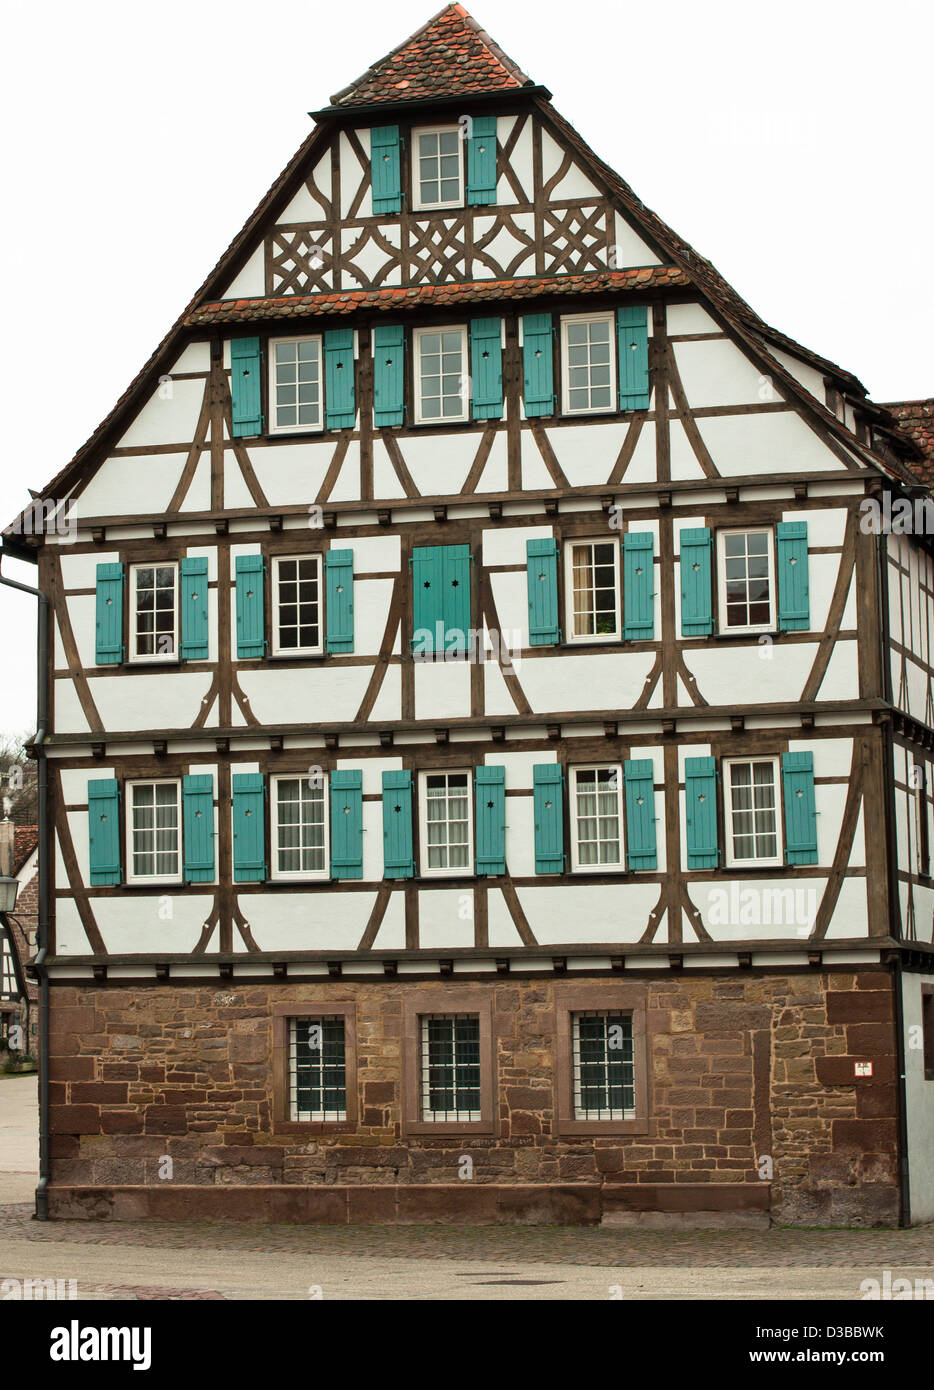 House Half Timbered German Culture Medieval Germany Traditional Architectural Feature Built Structure Europe